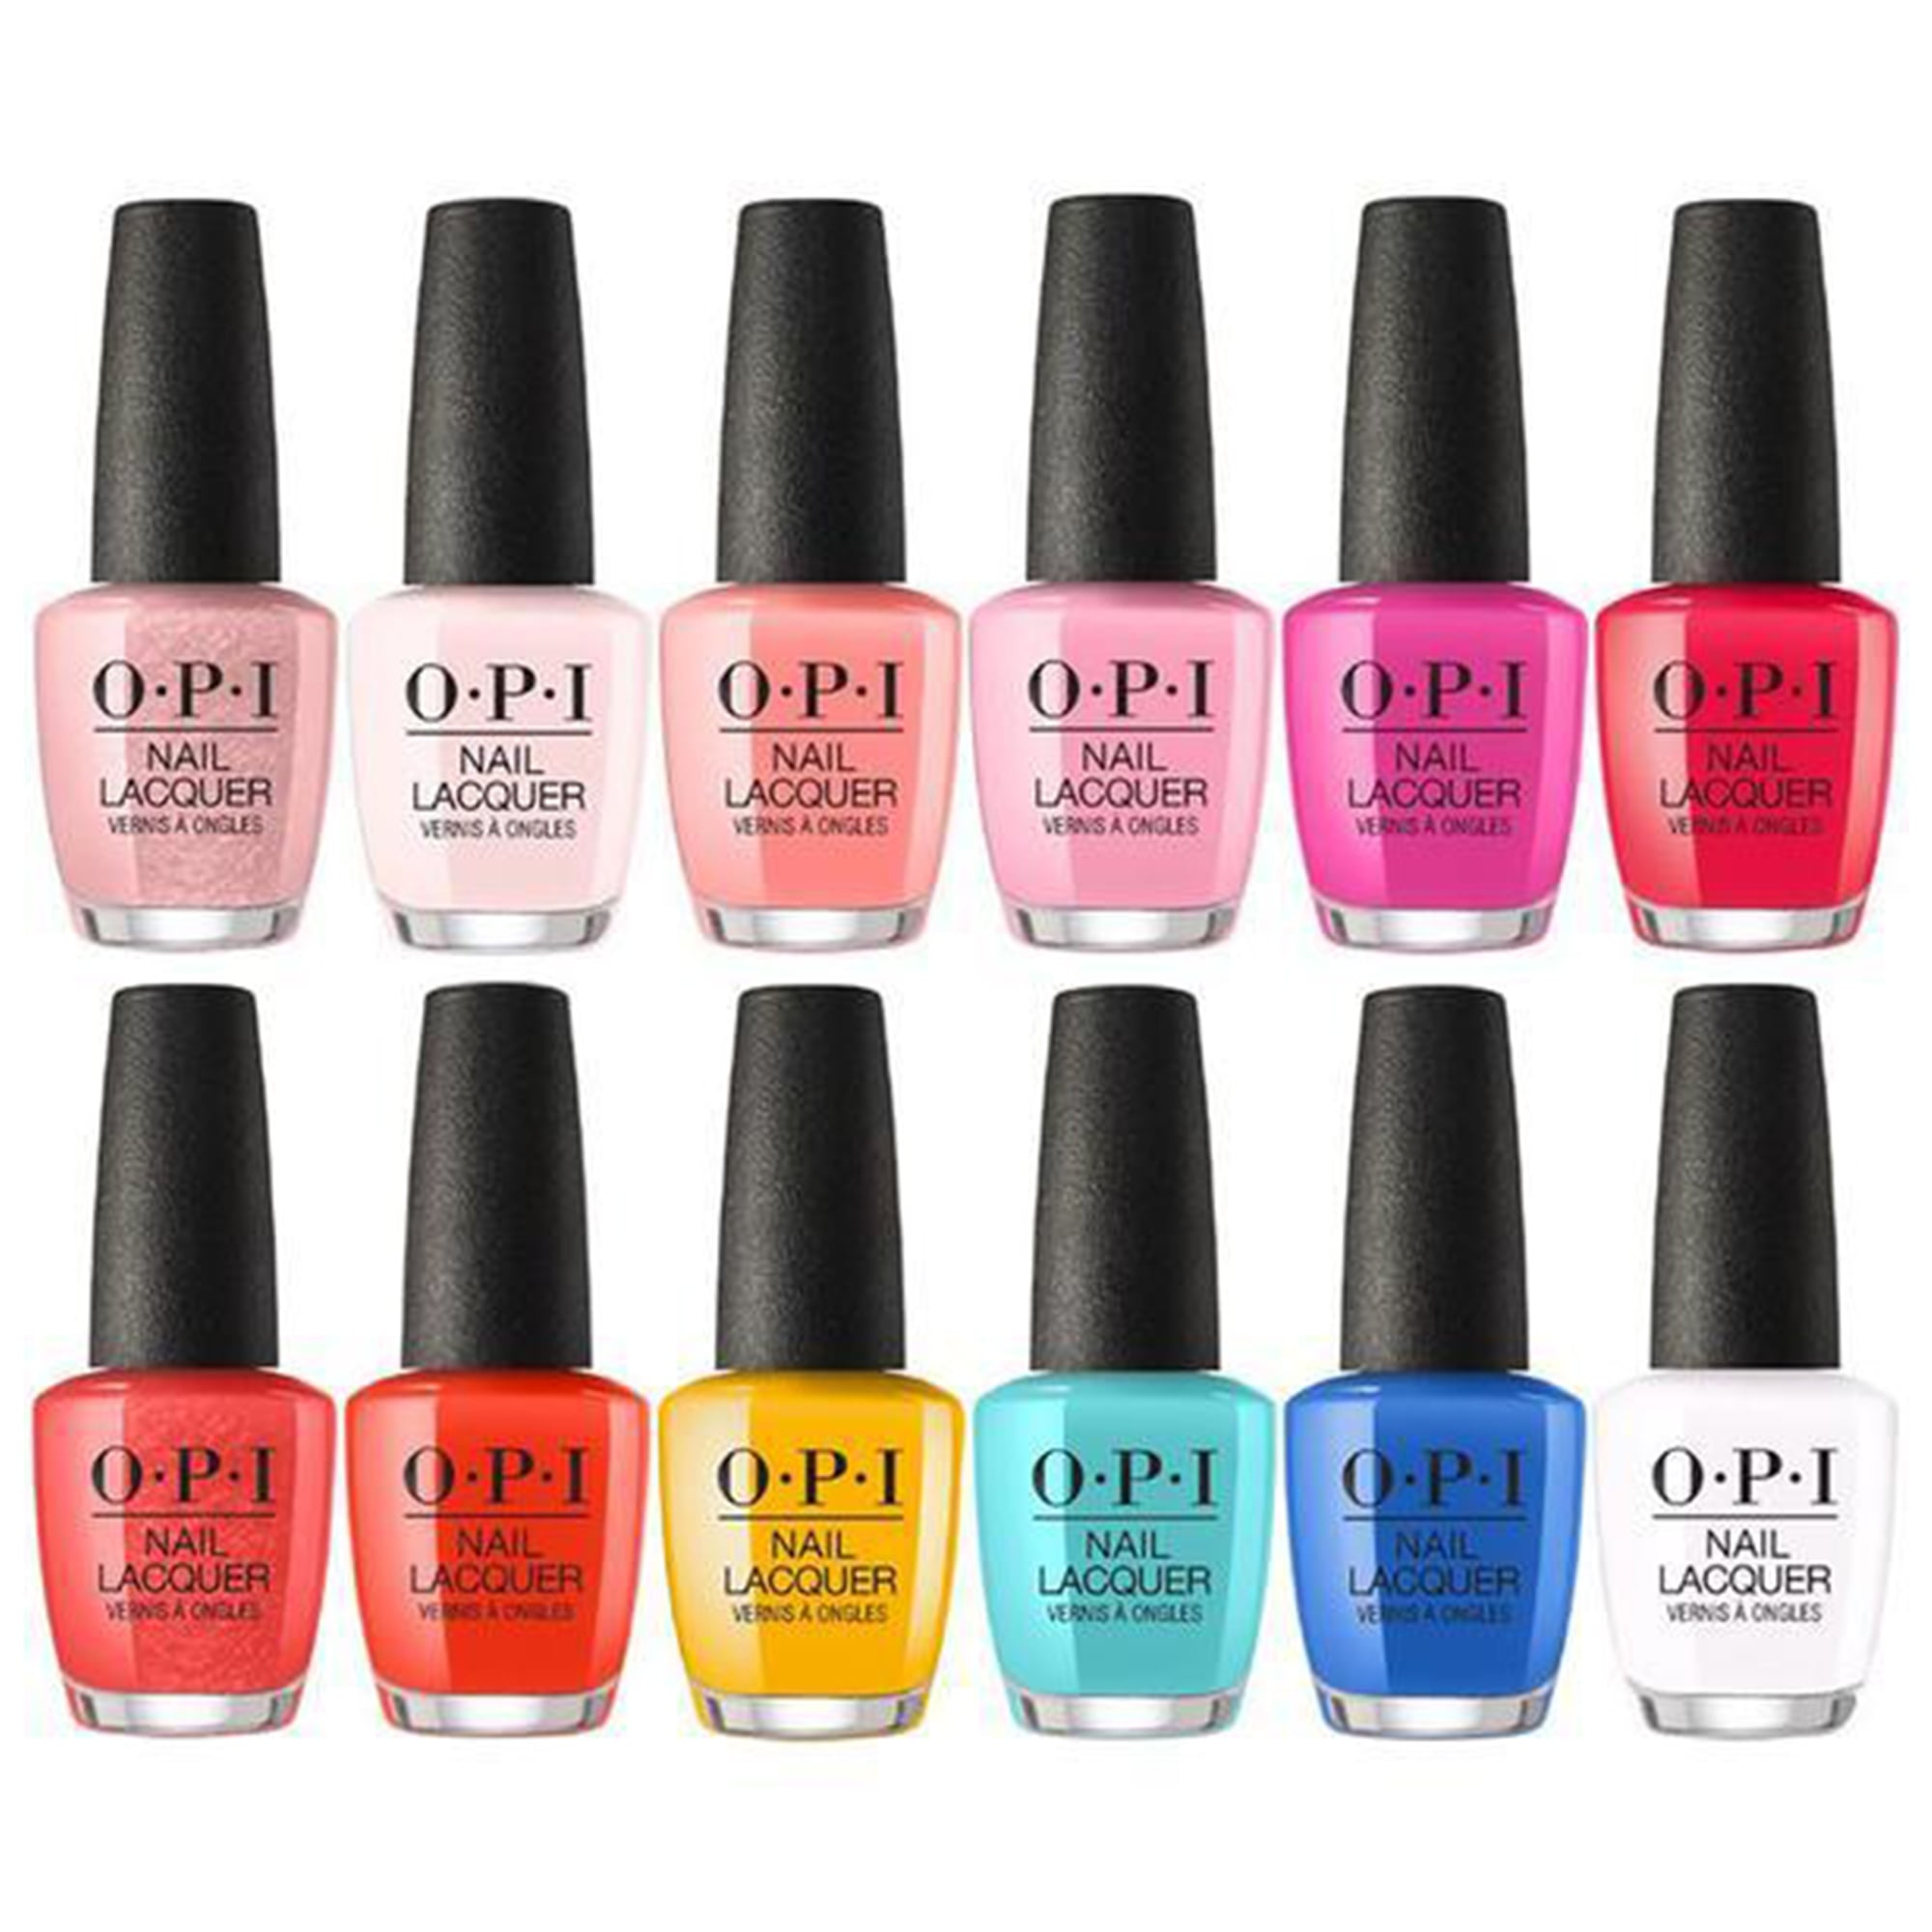 Nail Polish Colors Spring 2018 Opi: OPI Lisbon 2018 Nail Polish Collection